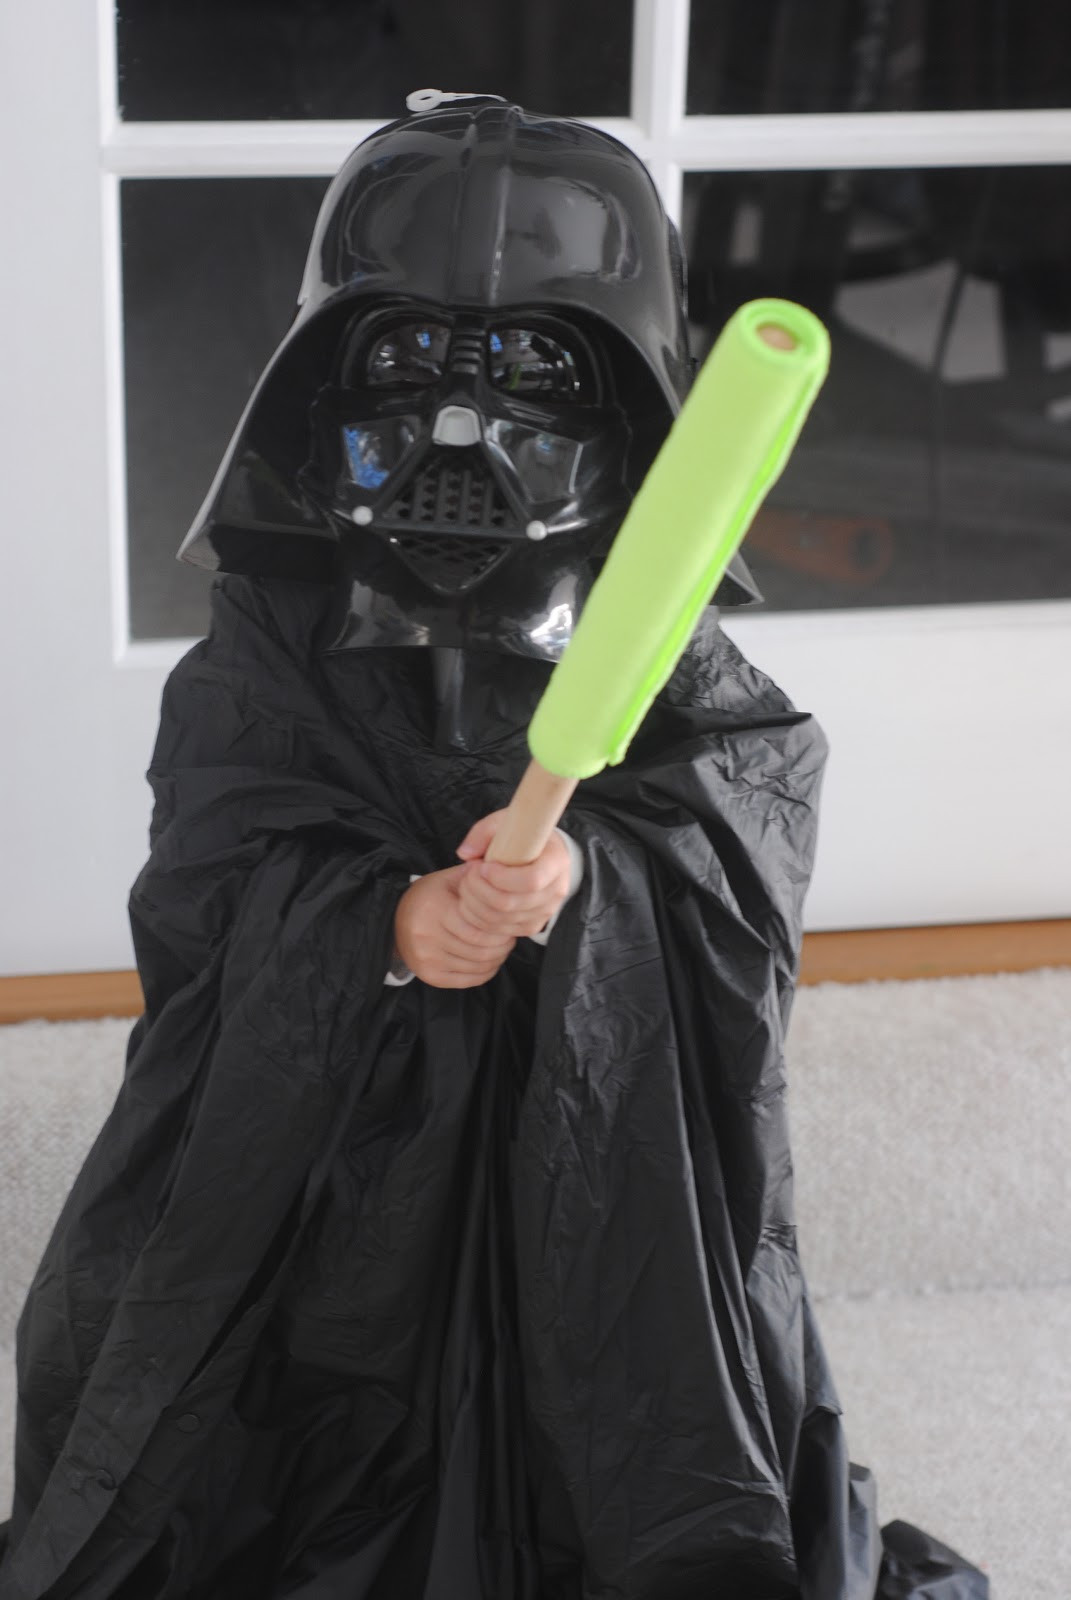 Best ideas about DIY Starwars Costume . Save or Pin Homemade Darth Vader Costume Star Wars Costume Now.